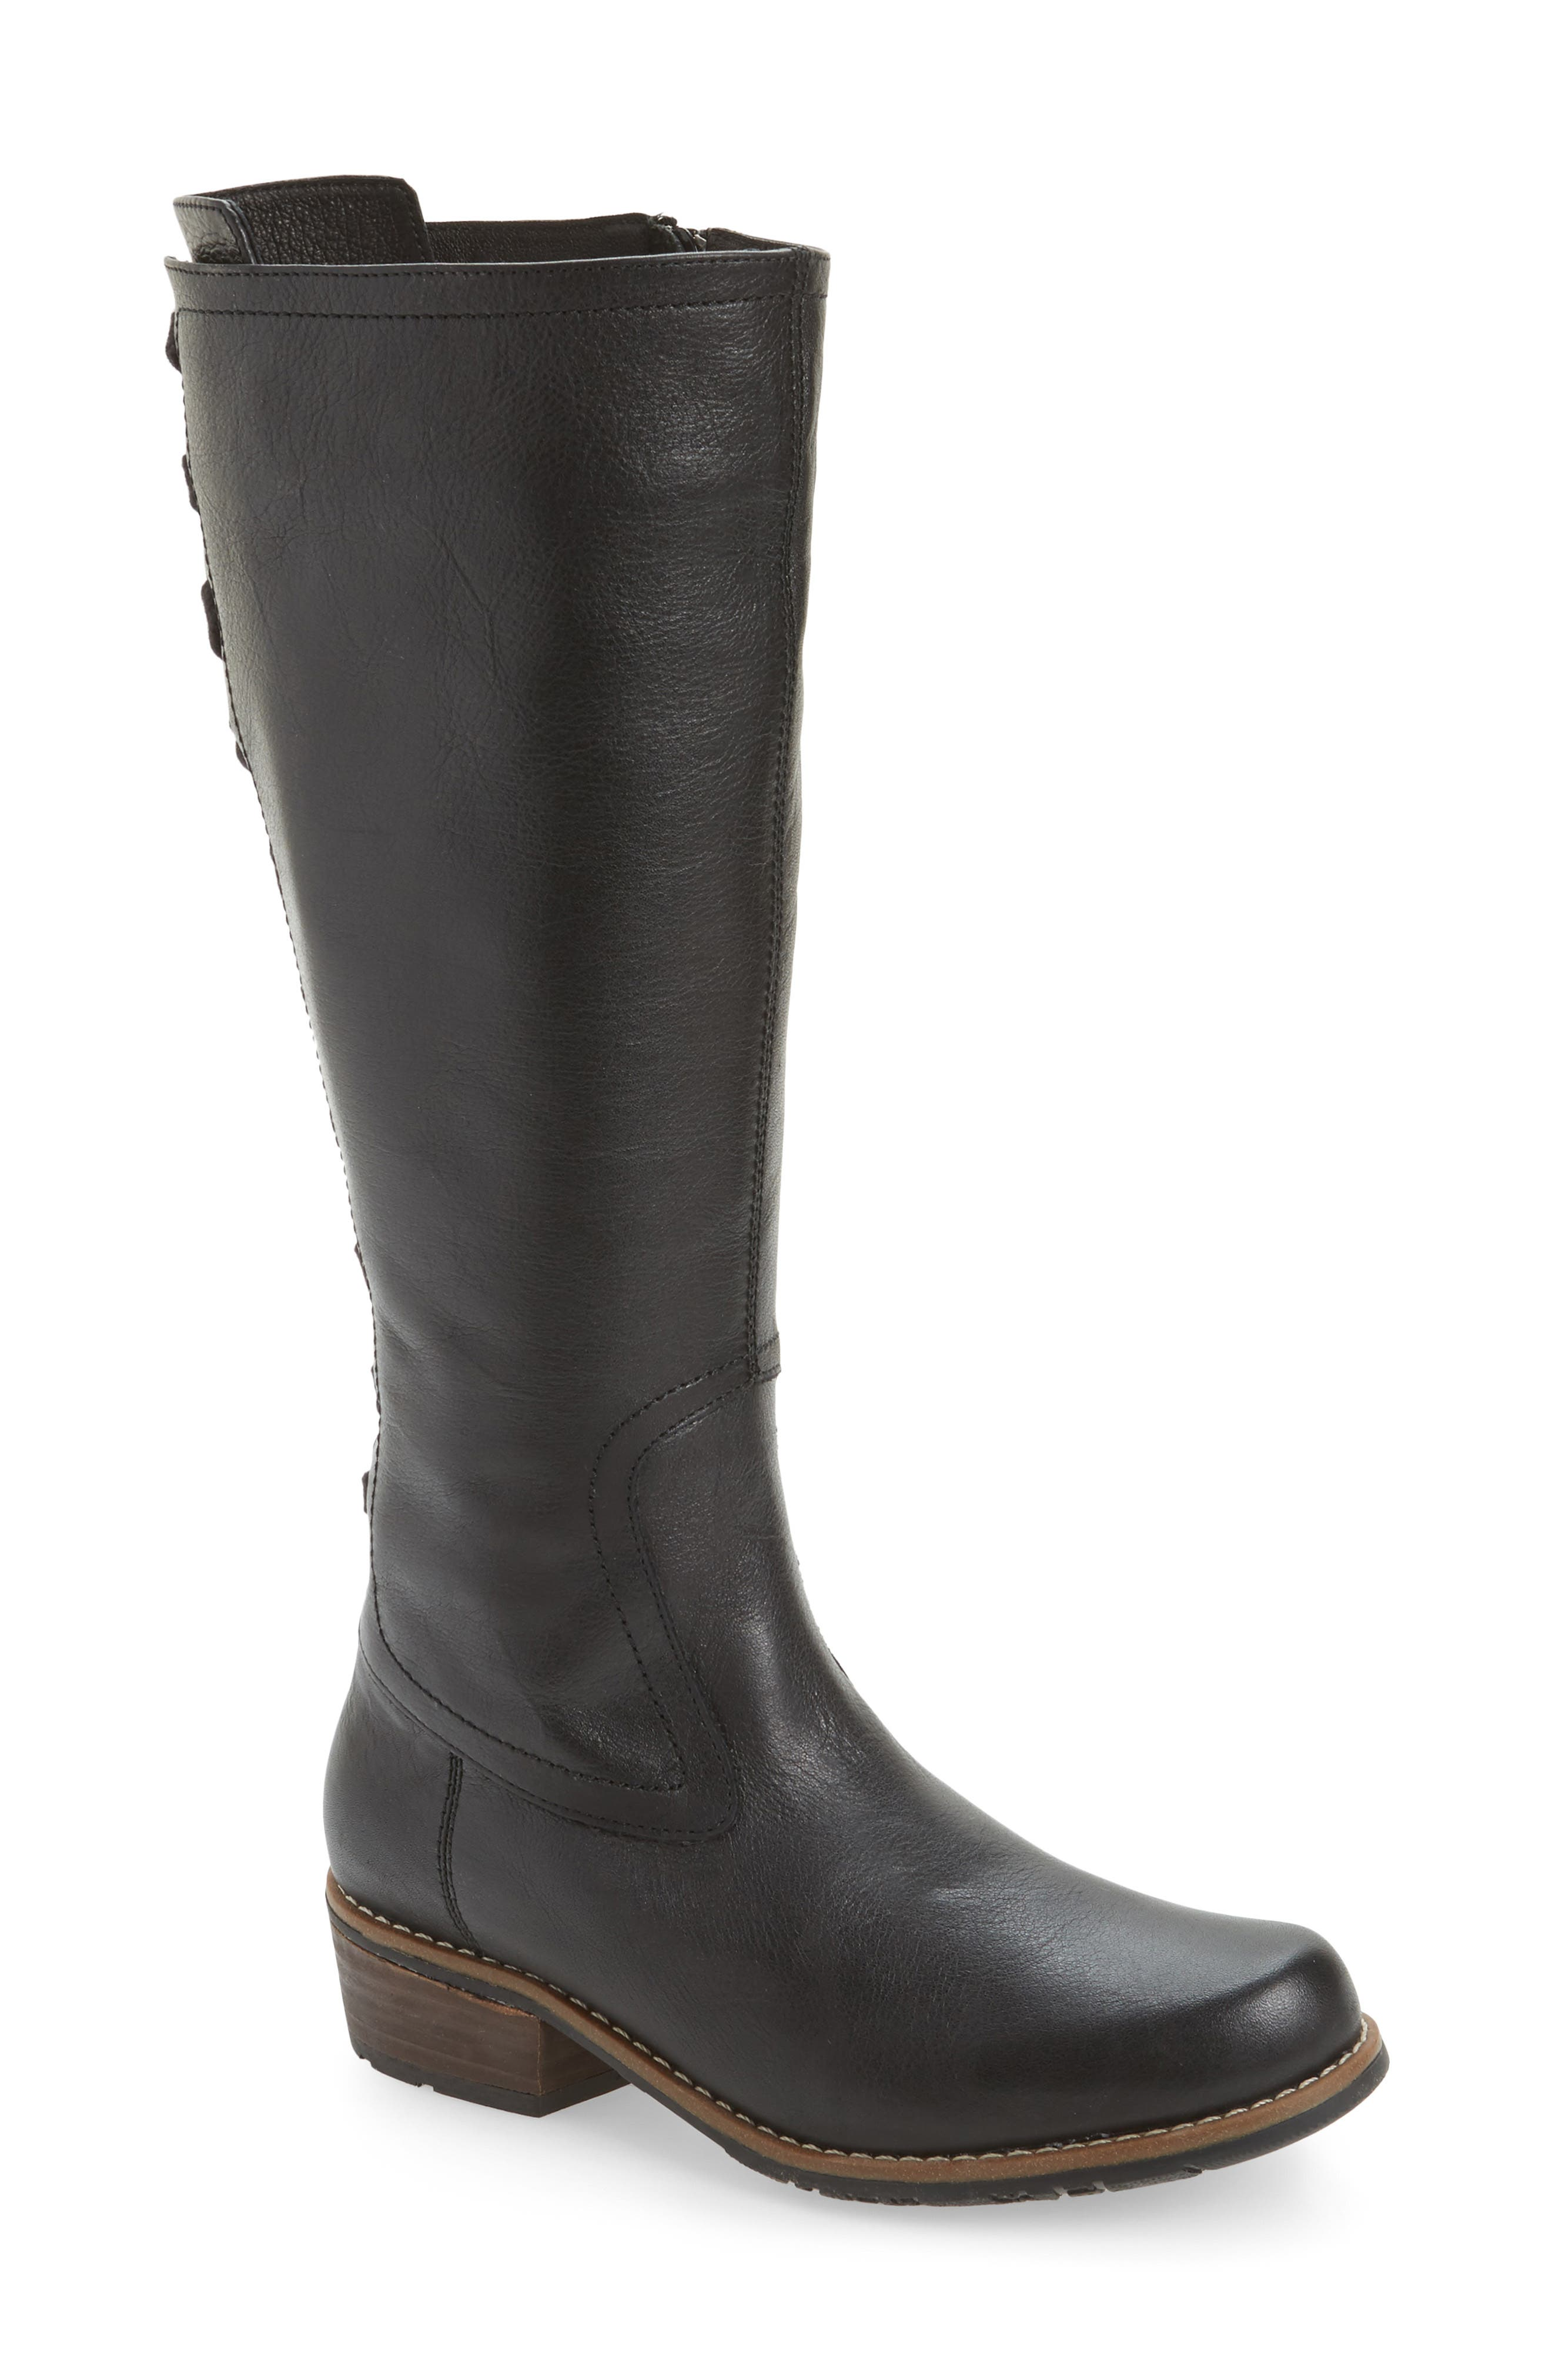 Main Image - Wolky Pardo Boot (Women)